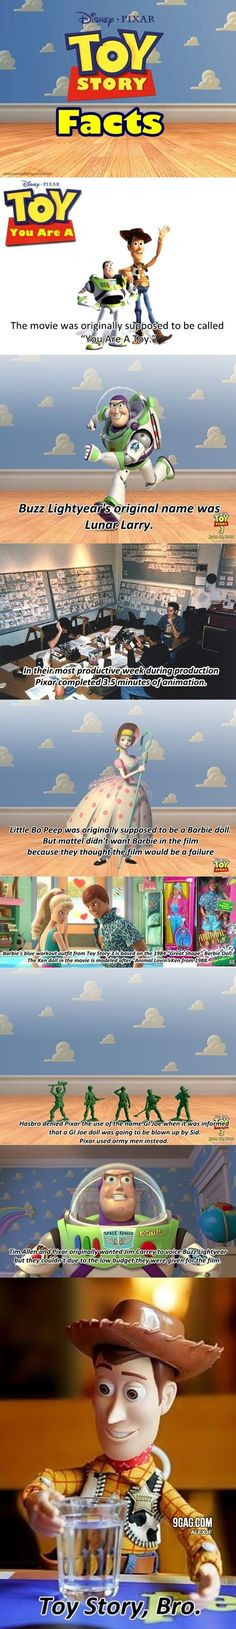 Top Ten Toy Story Facts I love learning disney secrets and I love toy story